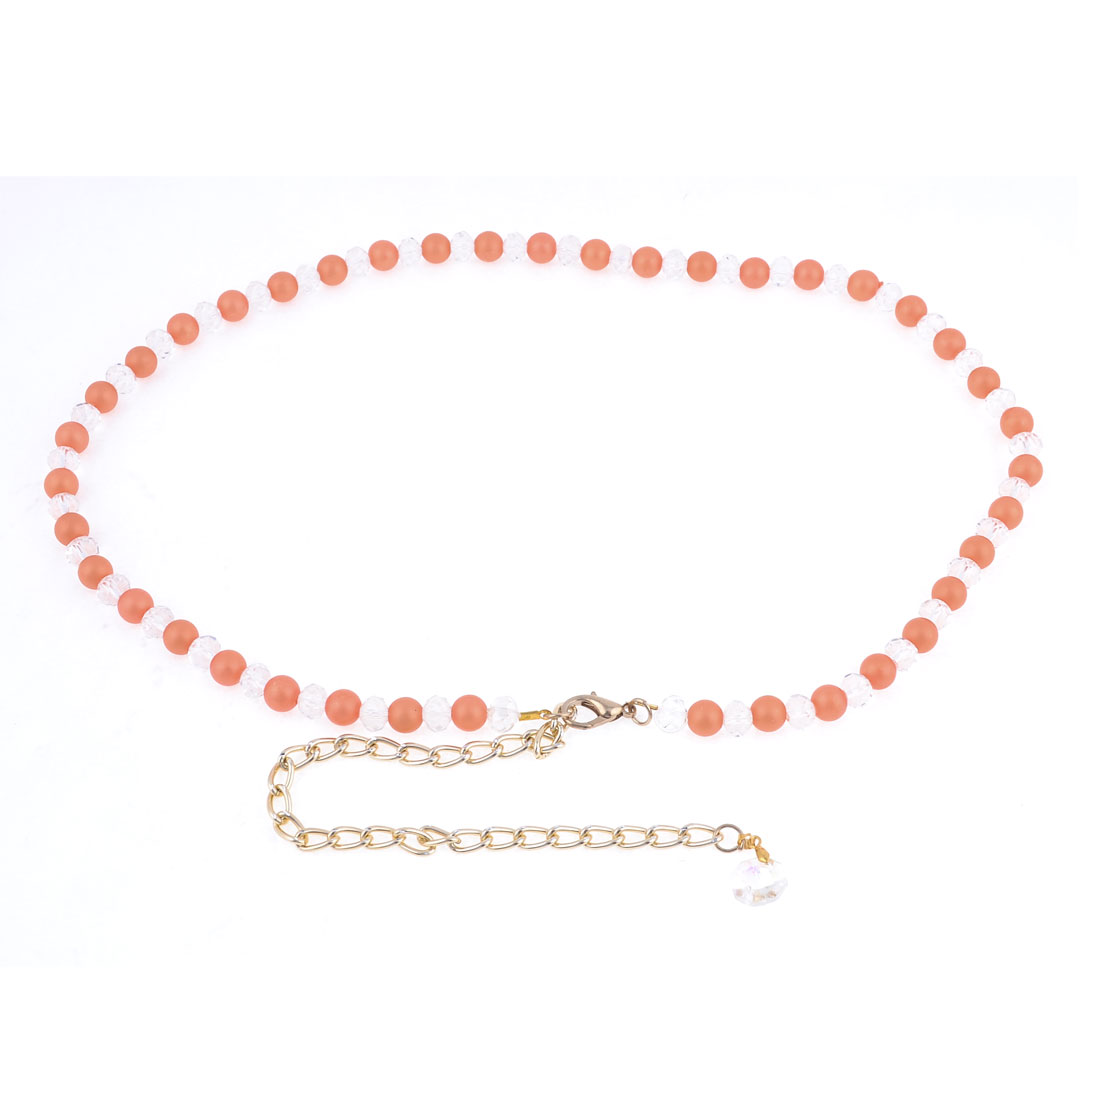 Lobster Clasp Plastic Beads Decoration Adjustable Chain Waist Belt Band Orange